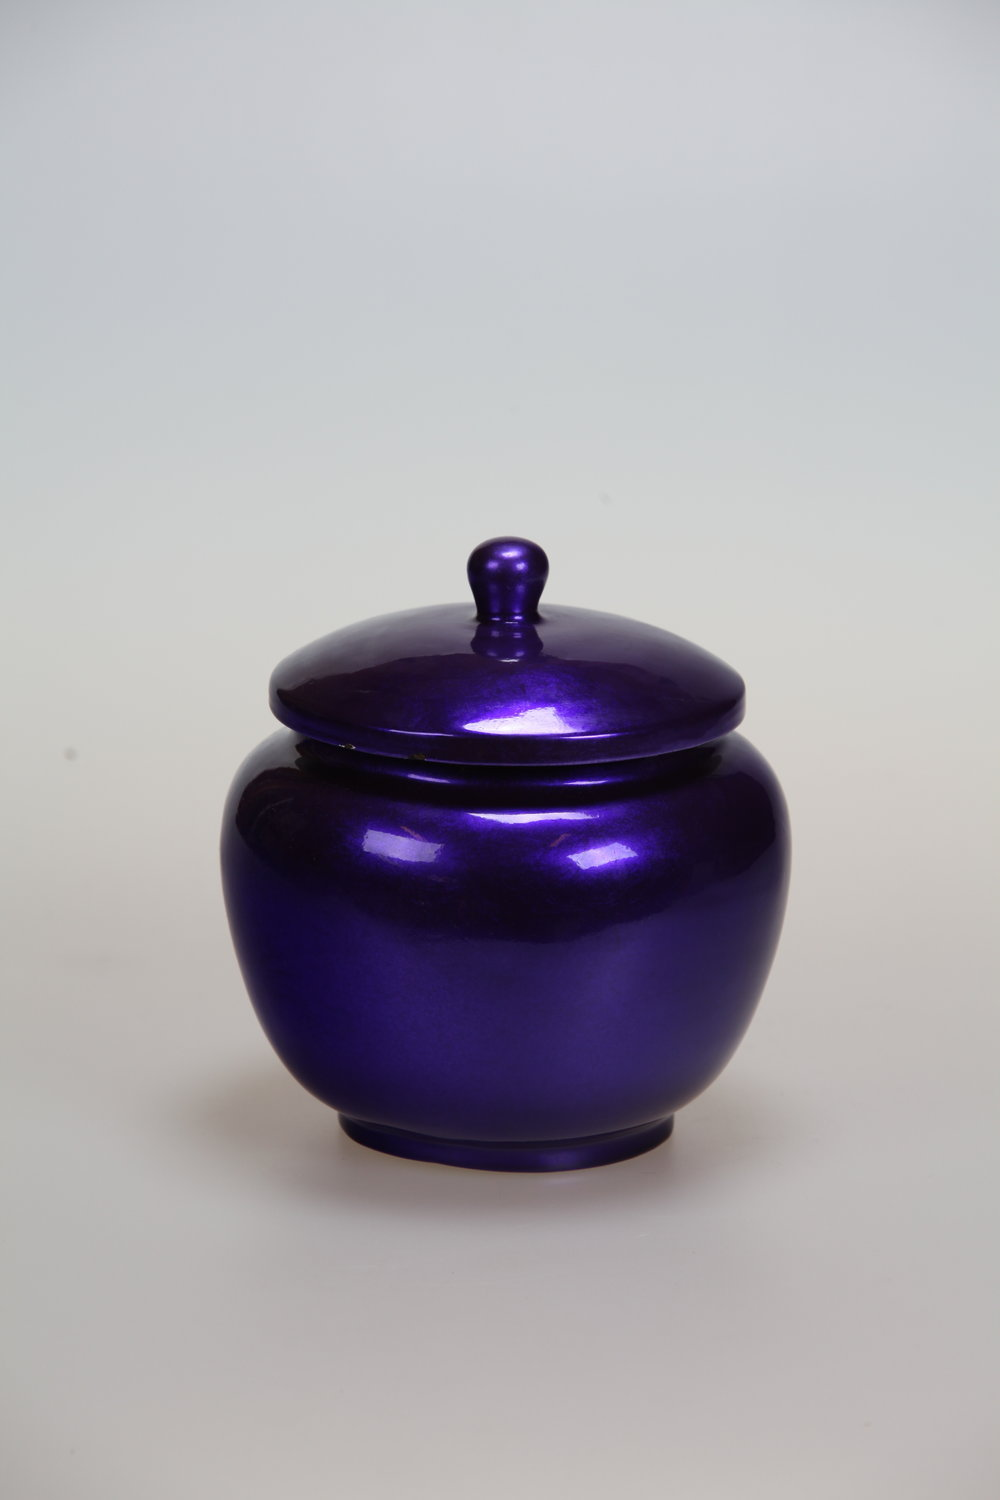 BTL 40_S, SMALL JAR IN PURPLE.JPG